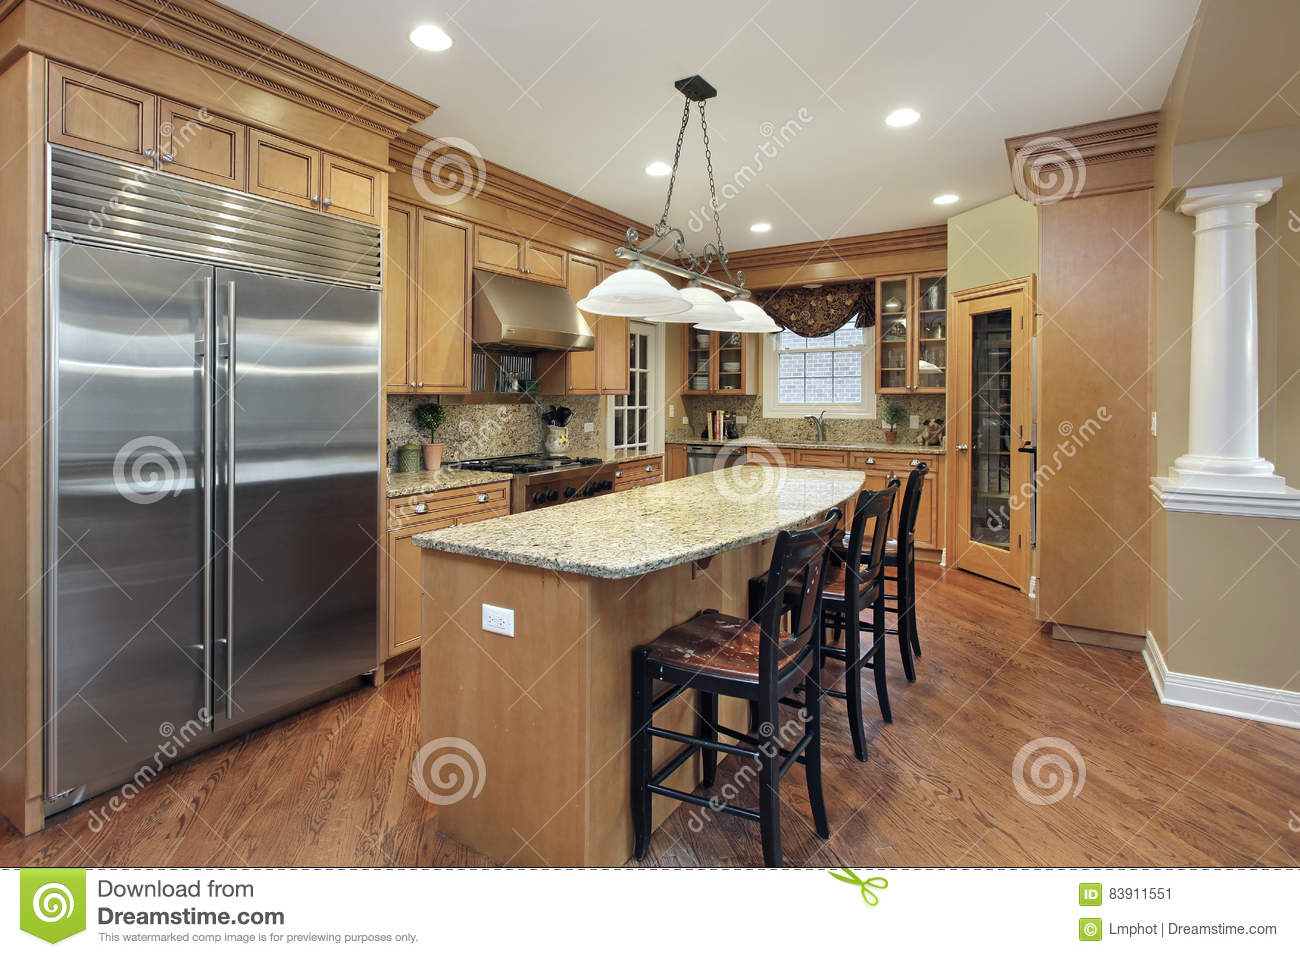 Kitchen With Center Island kitchen with center island stock photo - image: 83911551